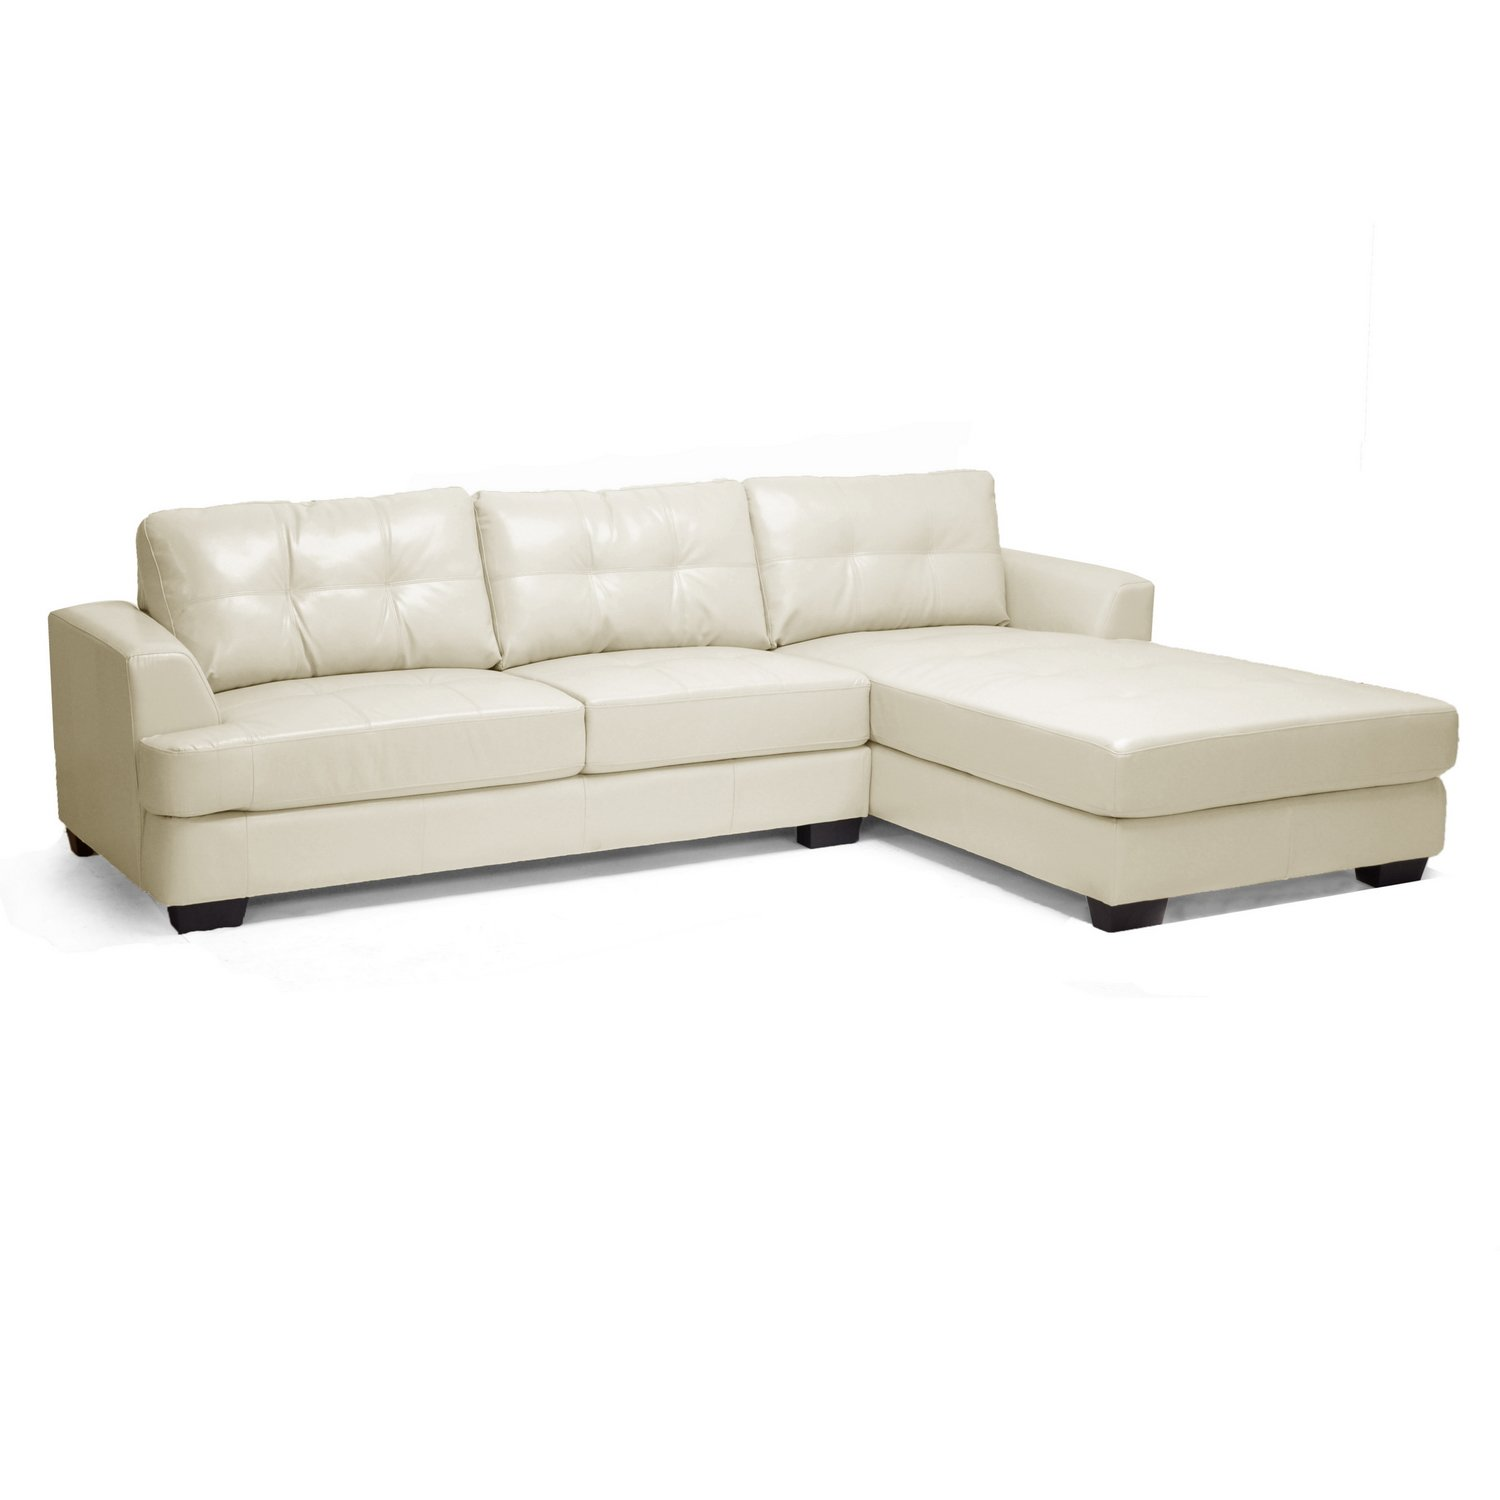 Sectional With Chaise Lounge Marvelous Sectional Couches With